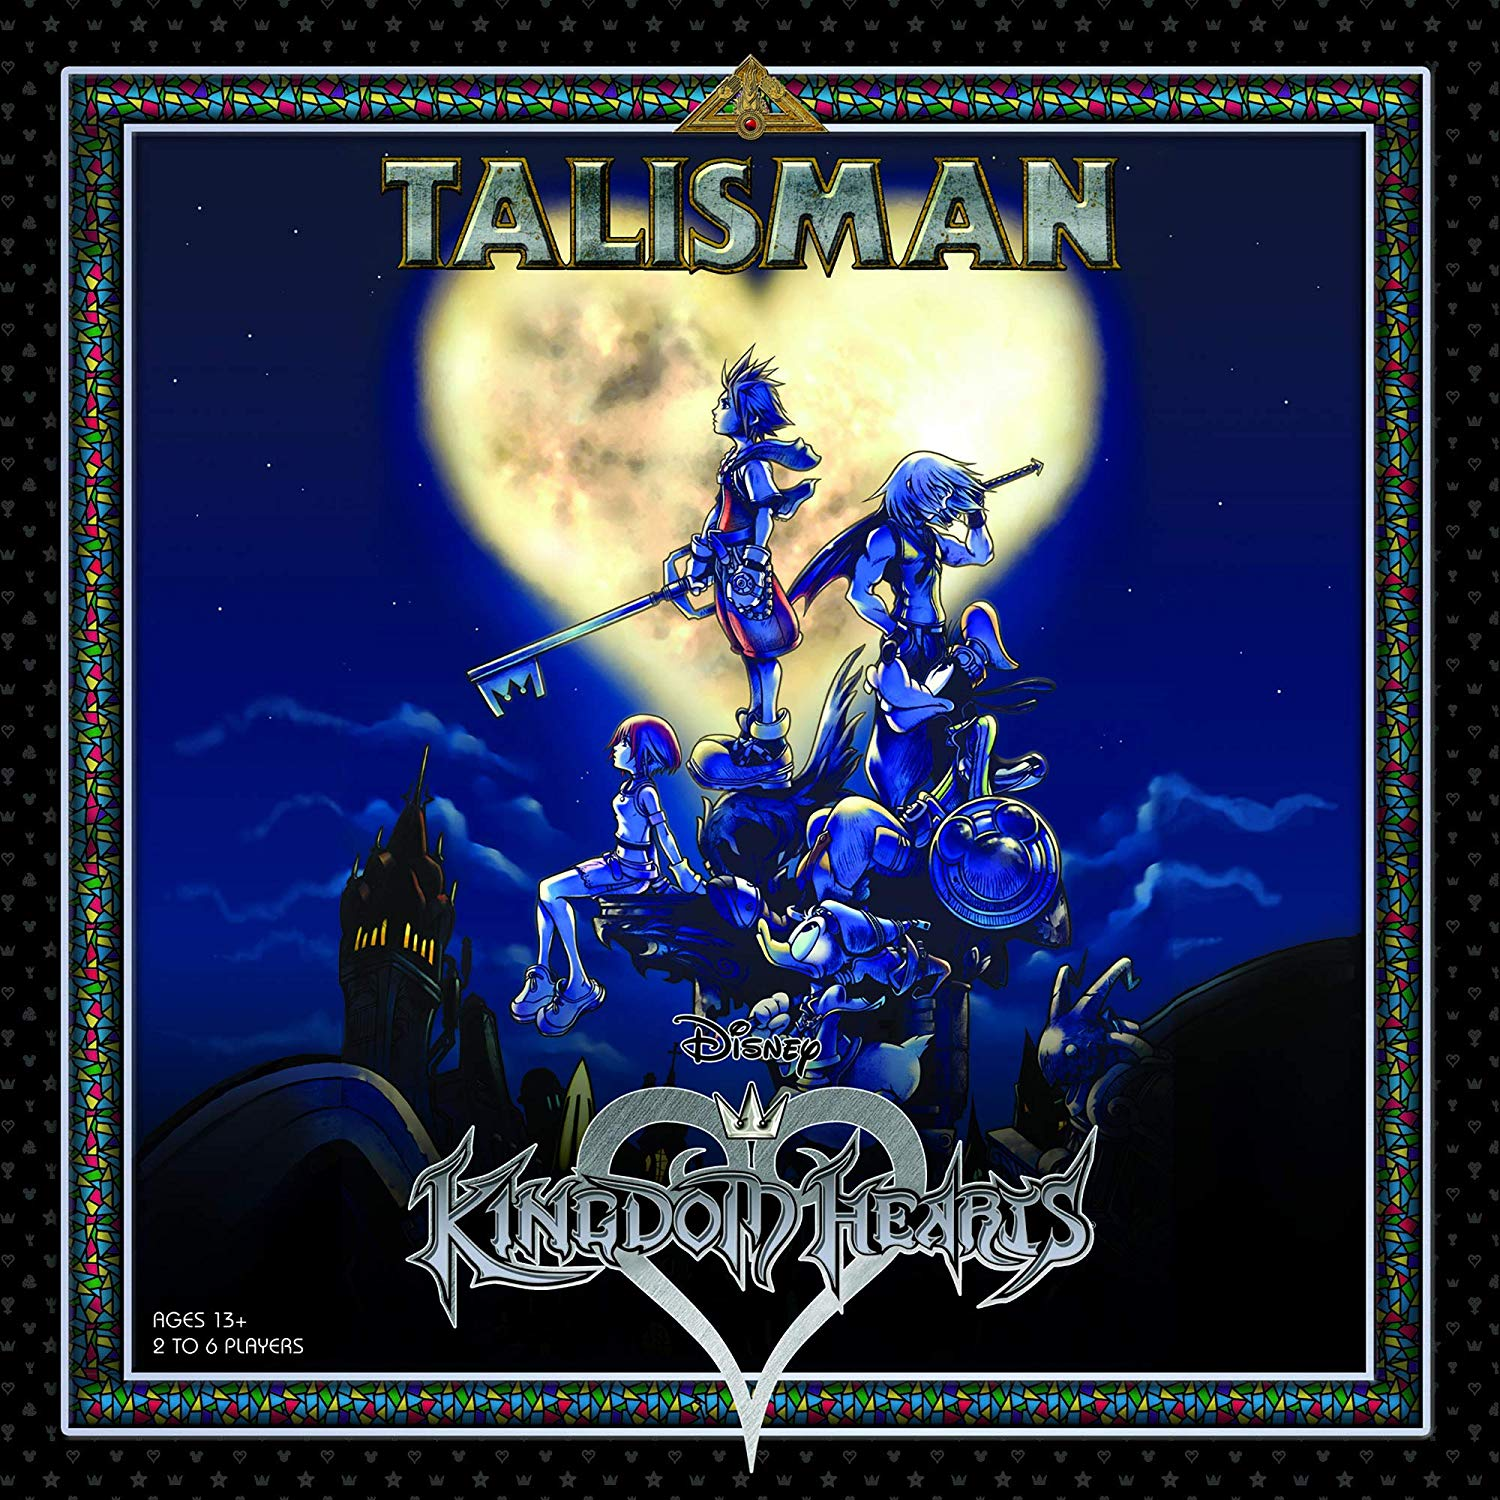 Talisman: Disney Kingdom Hearts | Gamers Grove